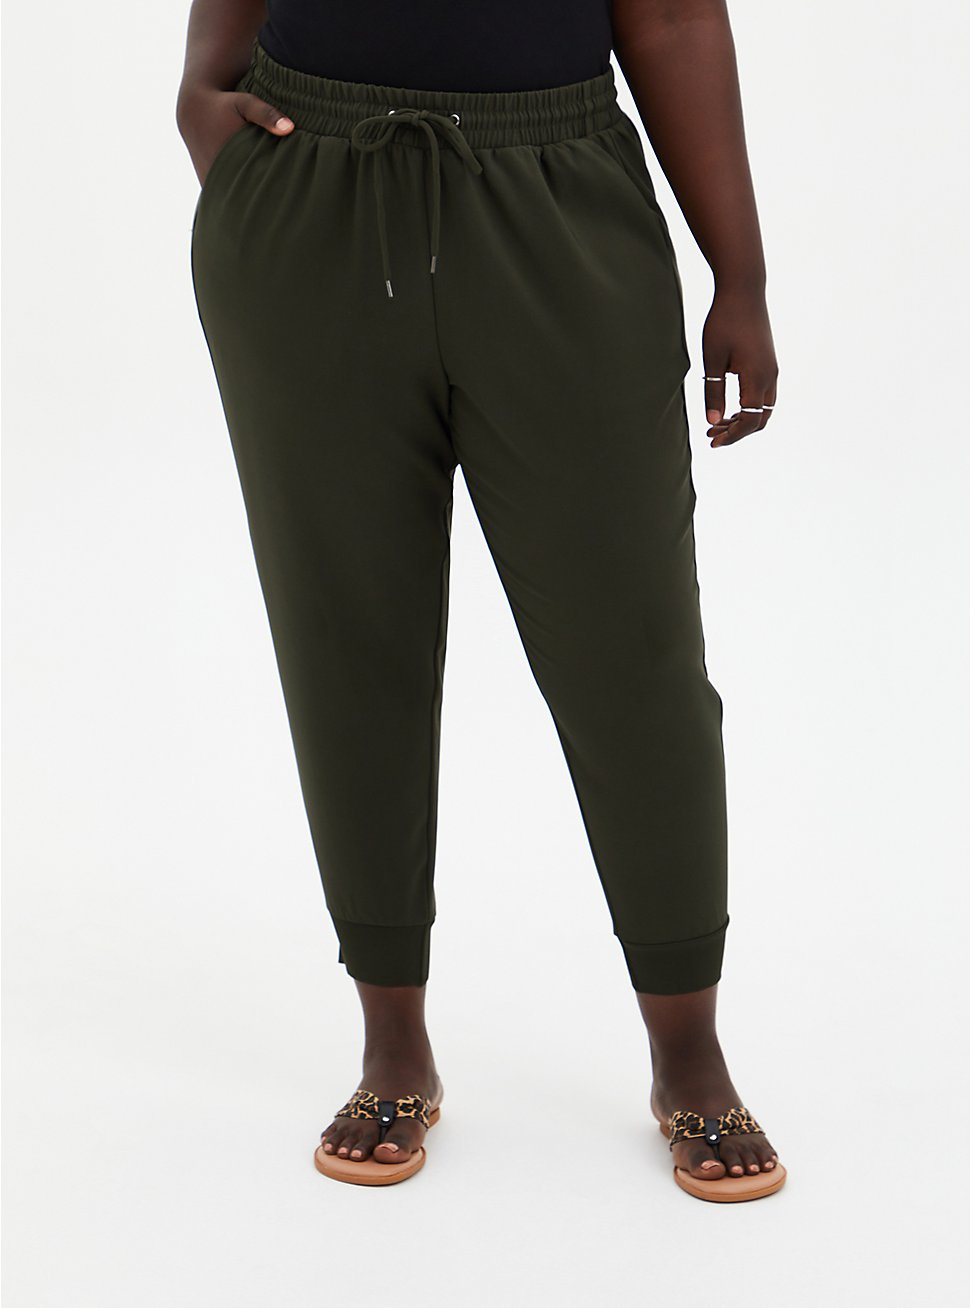 Relaxed Fit Jogger - Dressy Twill Forest Green , , hi-res